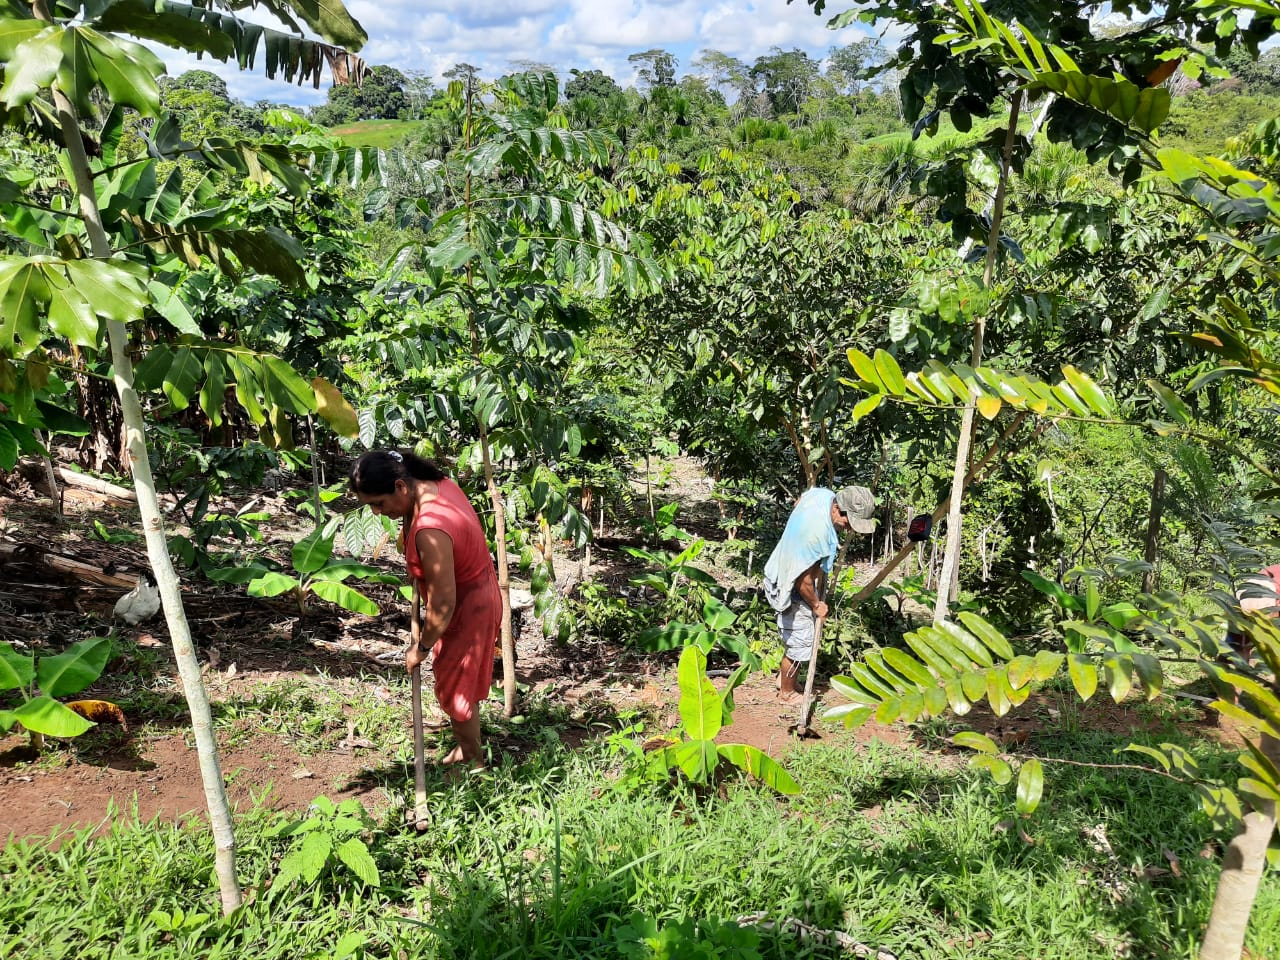 plant-a-tree-planting-charity-native-amazon-rainforest-reforestation-agroforestry-peru-plant-your-future-19